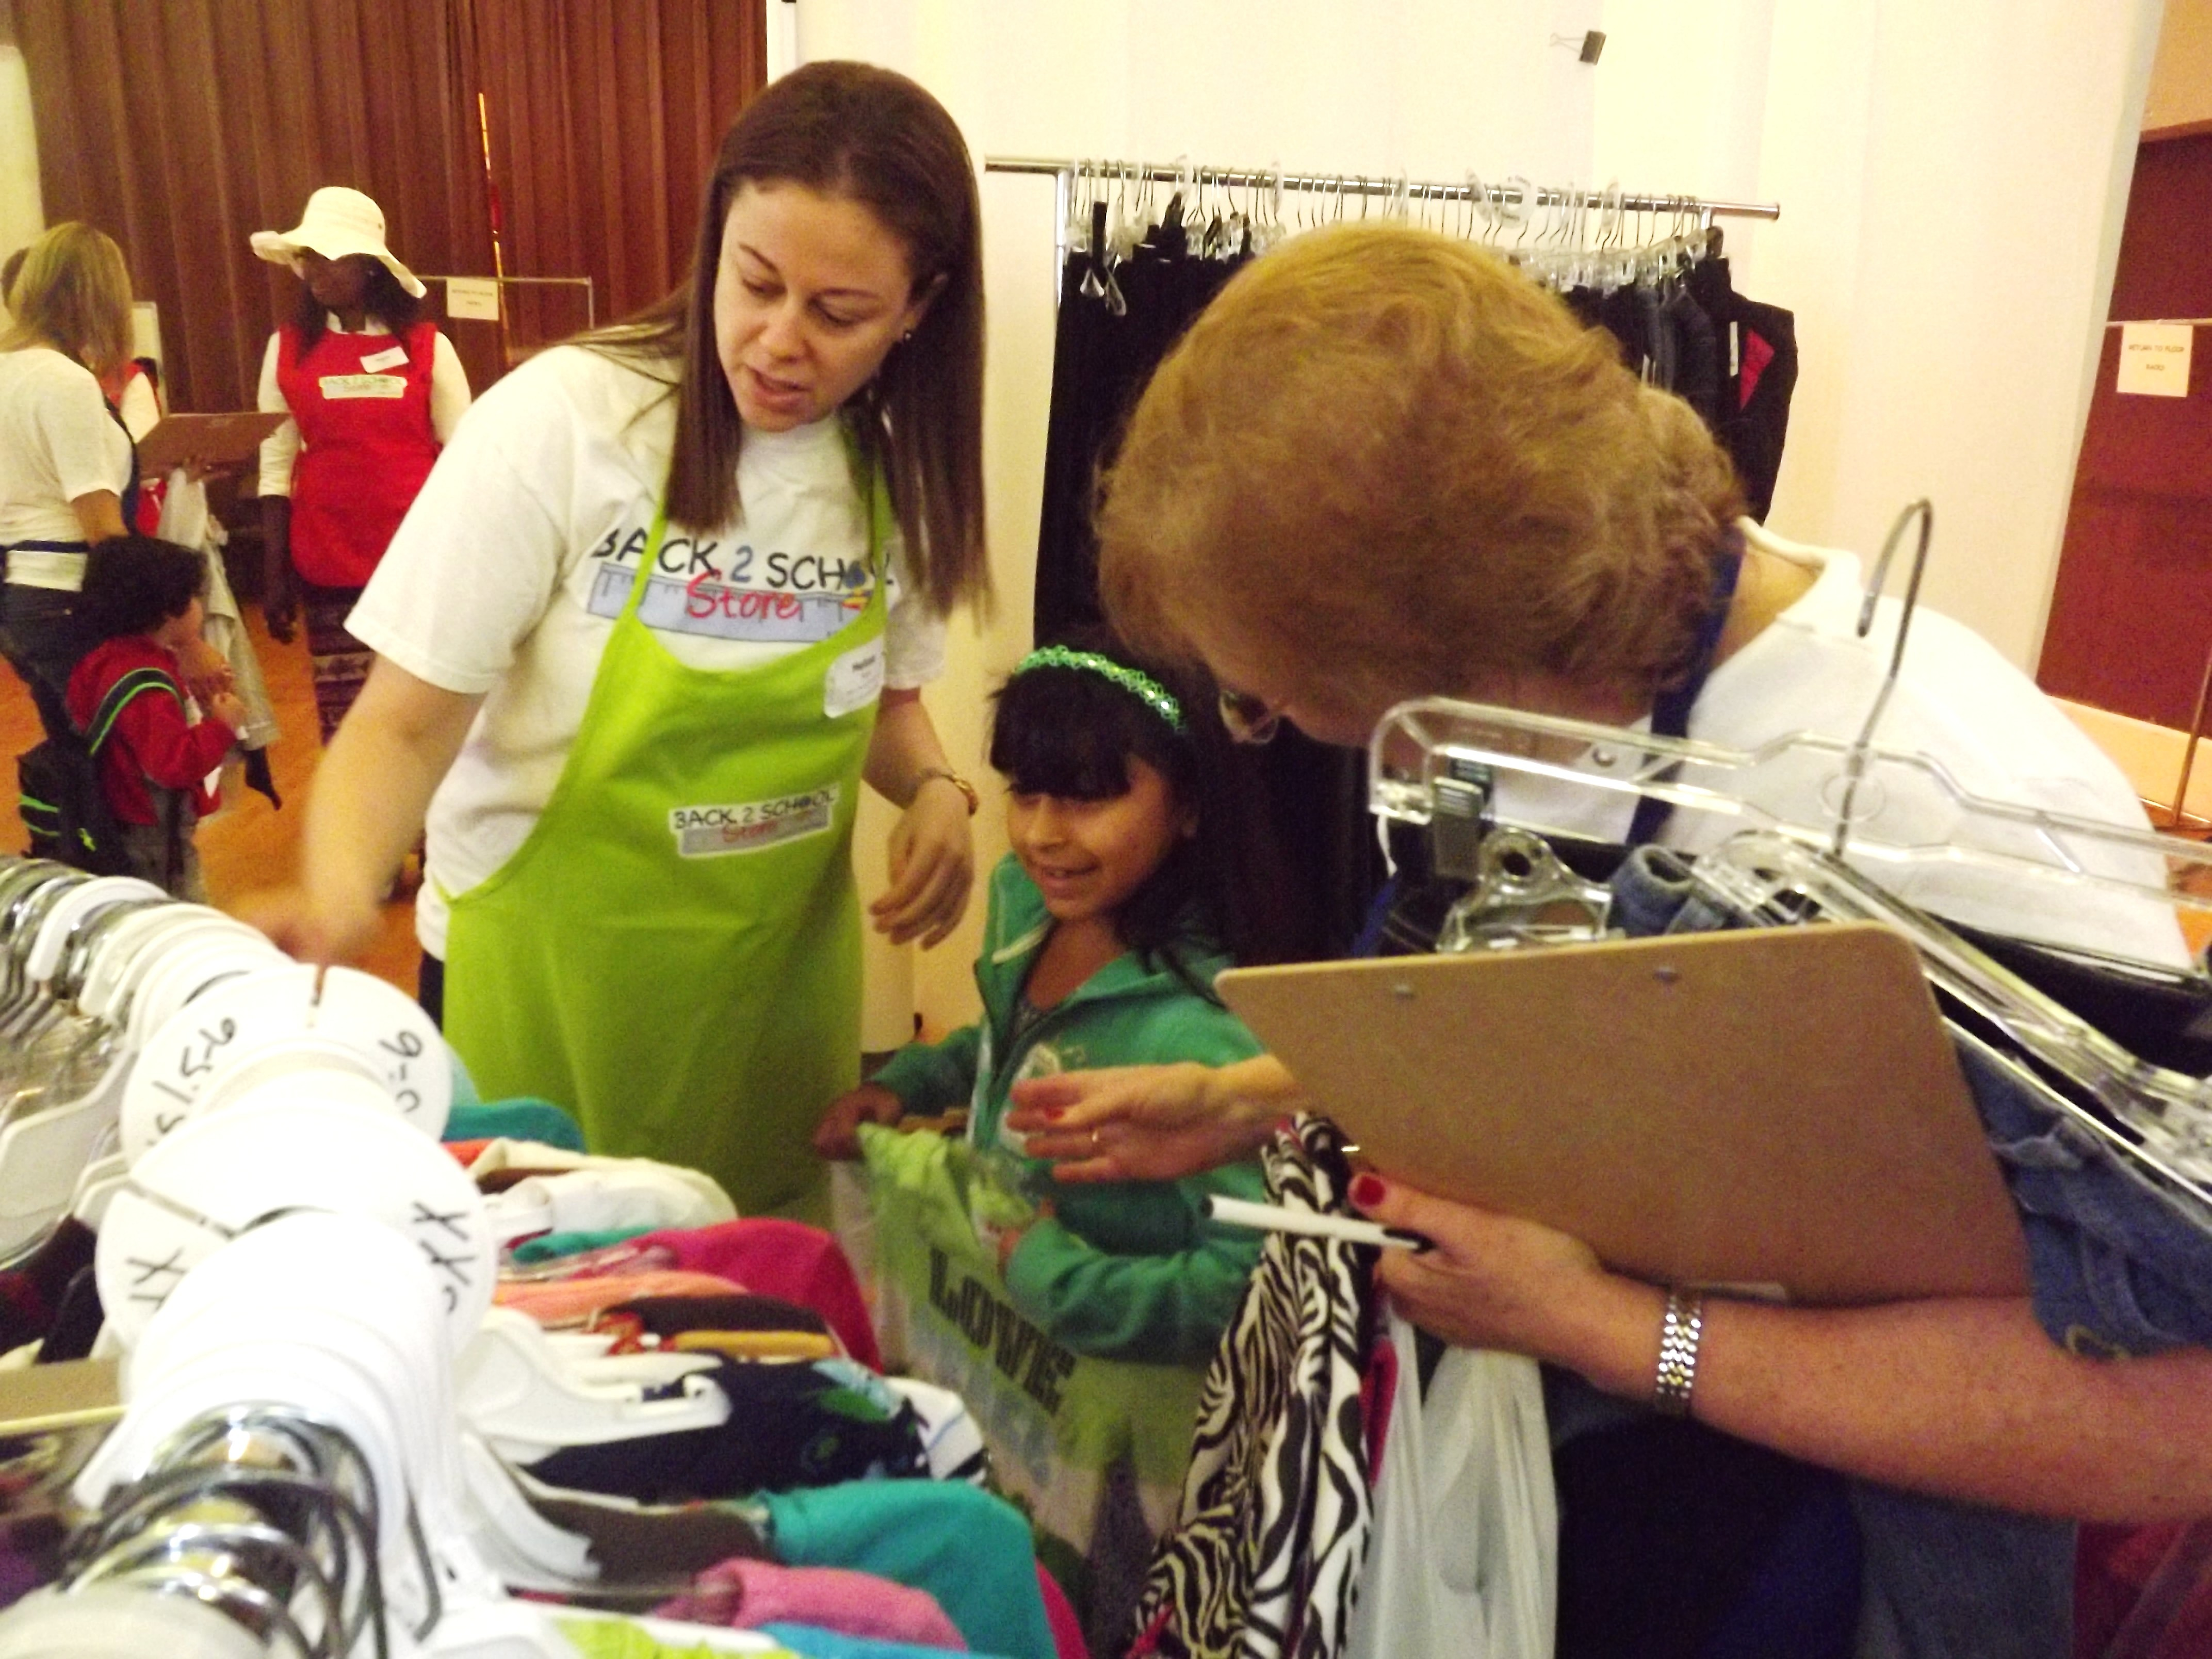 children welcomed at back school store in west orange department store assistant melissa sophia and personal shopper hedy look at outfits credits cynthiai cumming